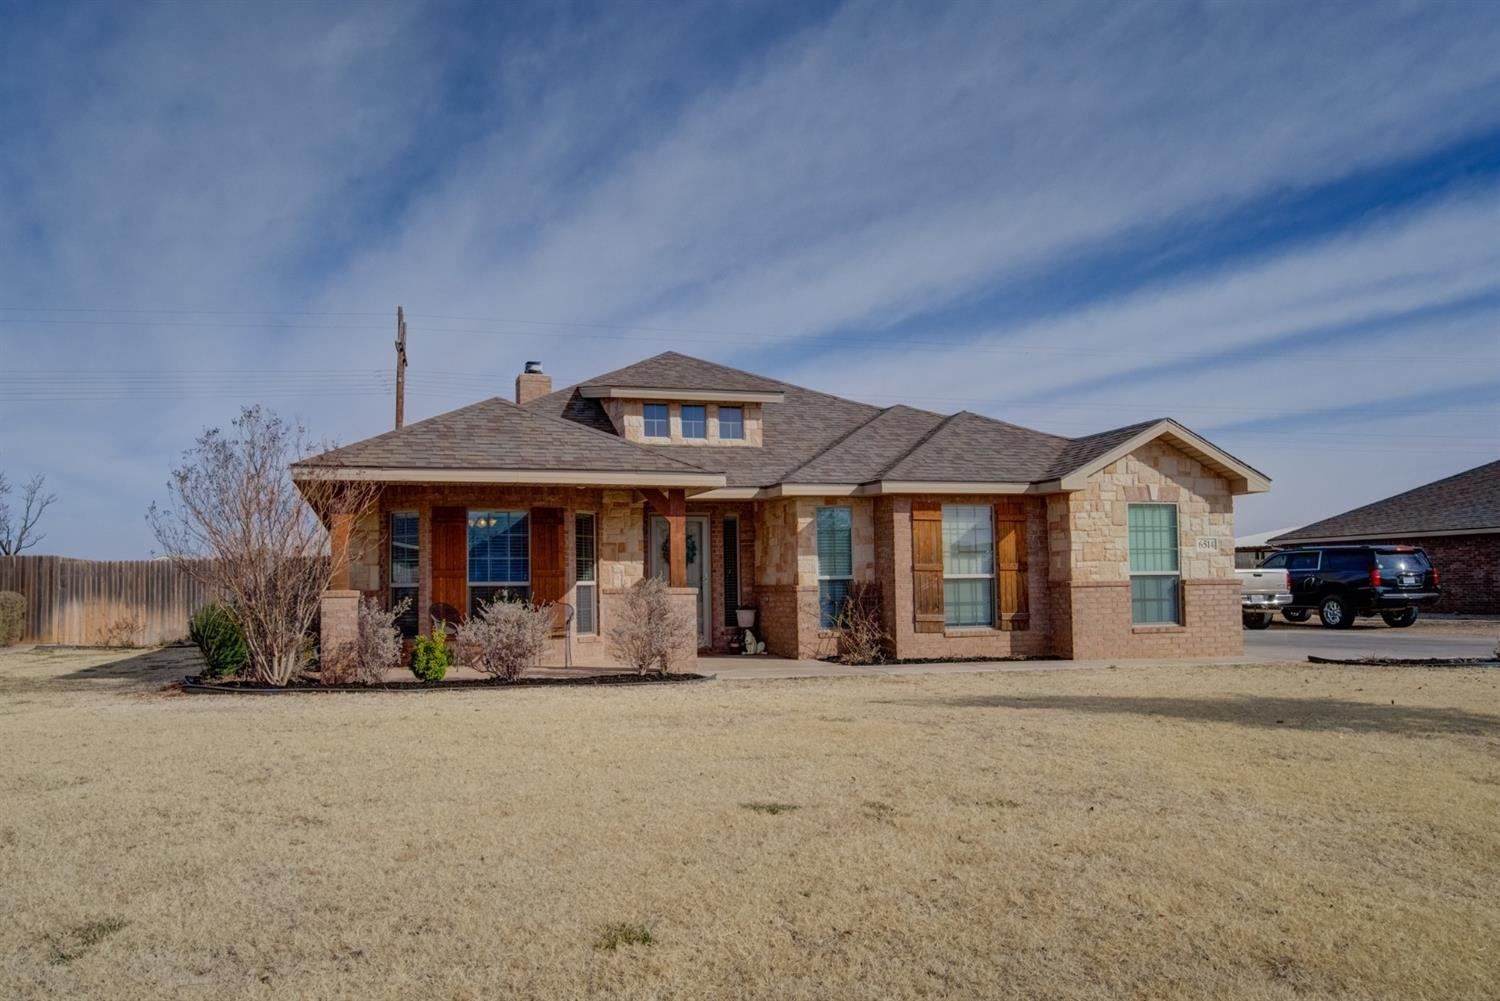 6514 Lehigh Street, Lubbock in Lubbock County, TX 79416 Home for Sale